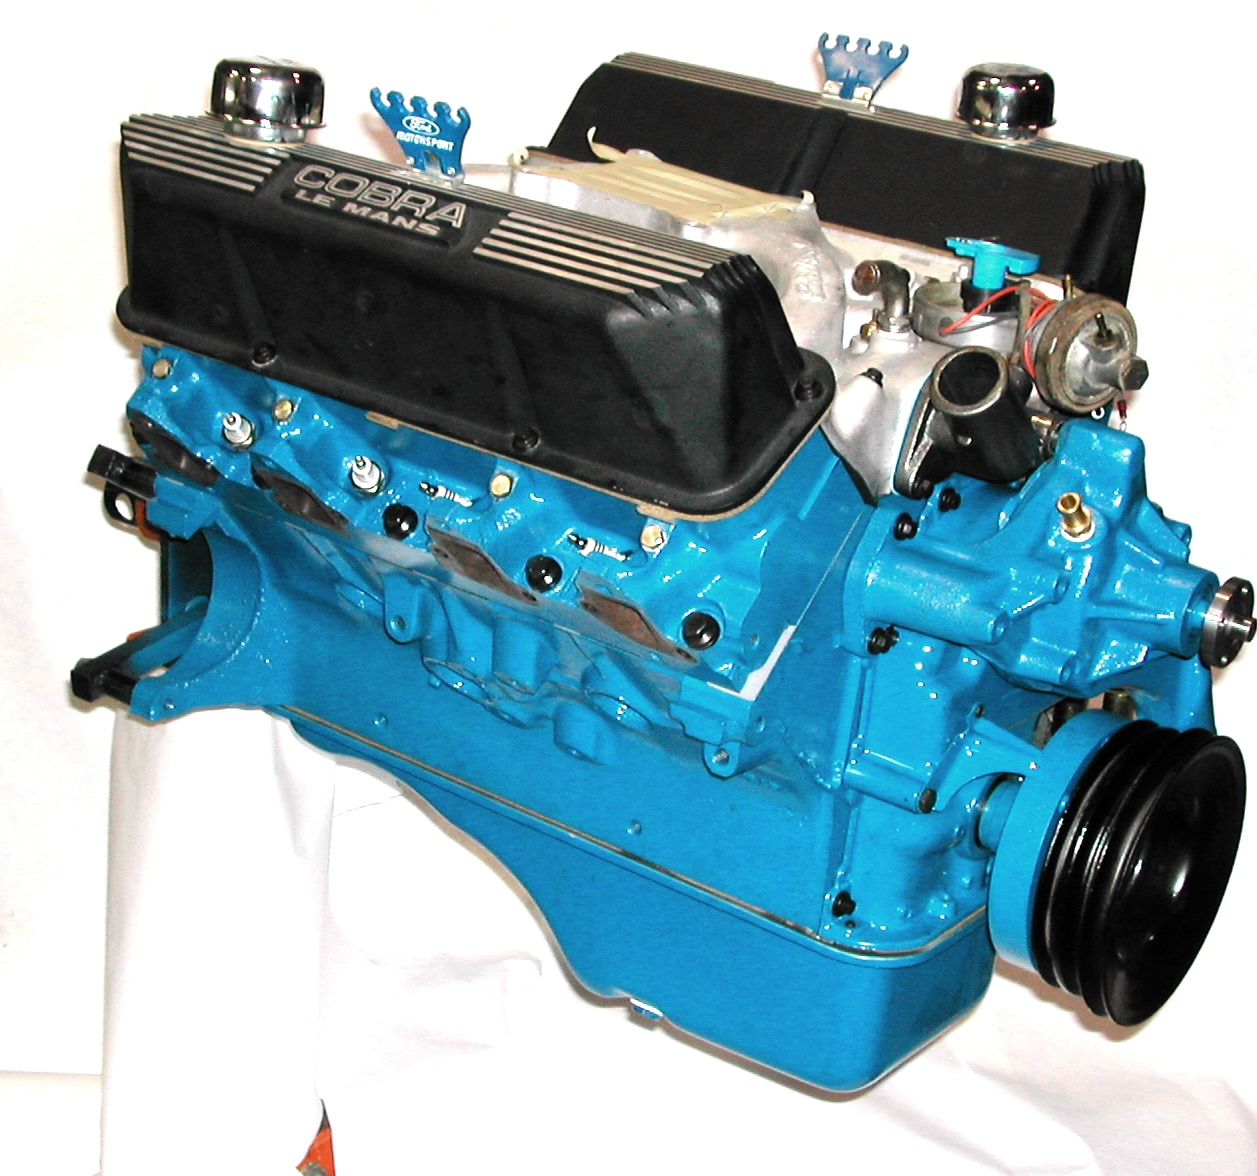 Ford Fe 390 Engine Kits